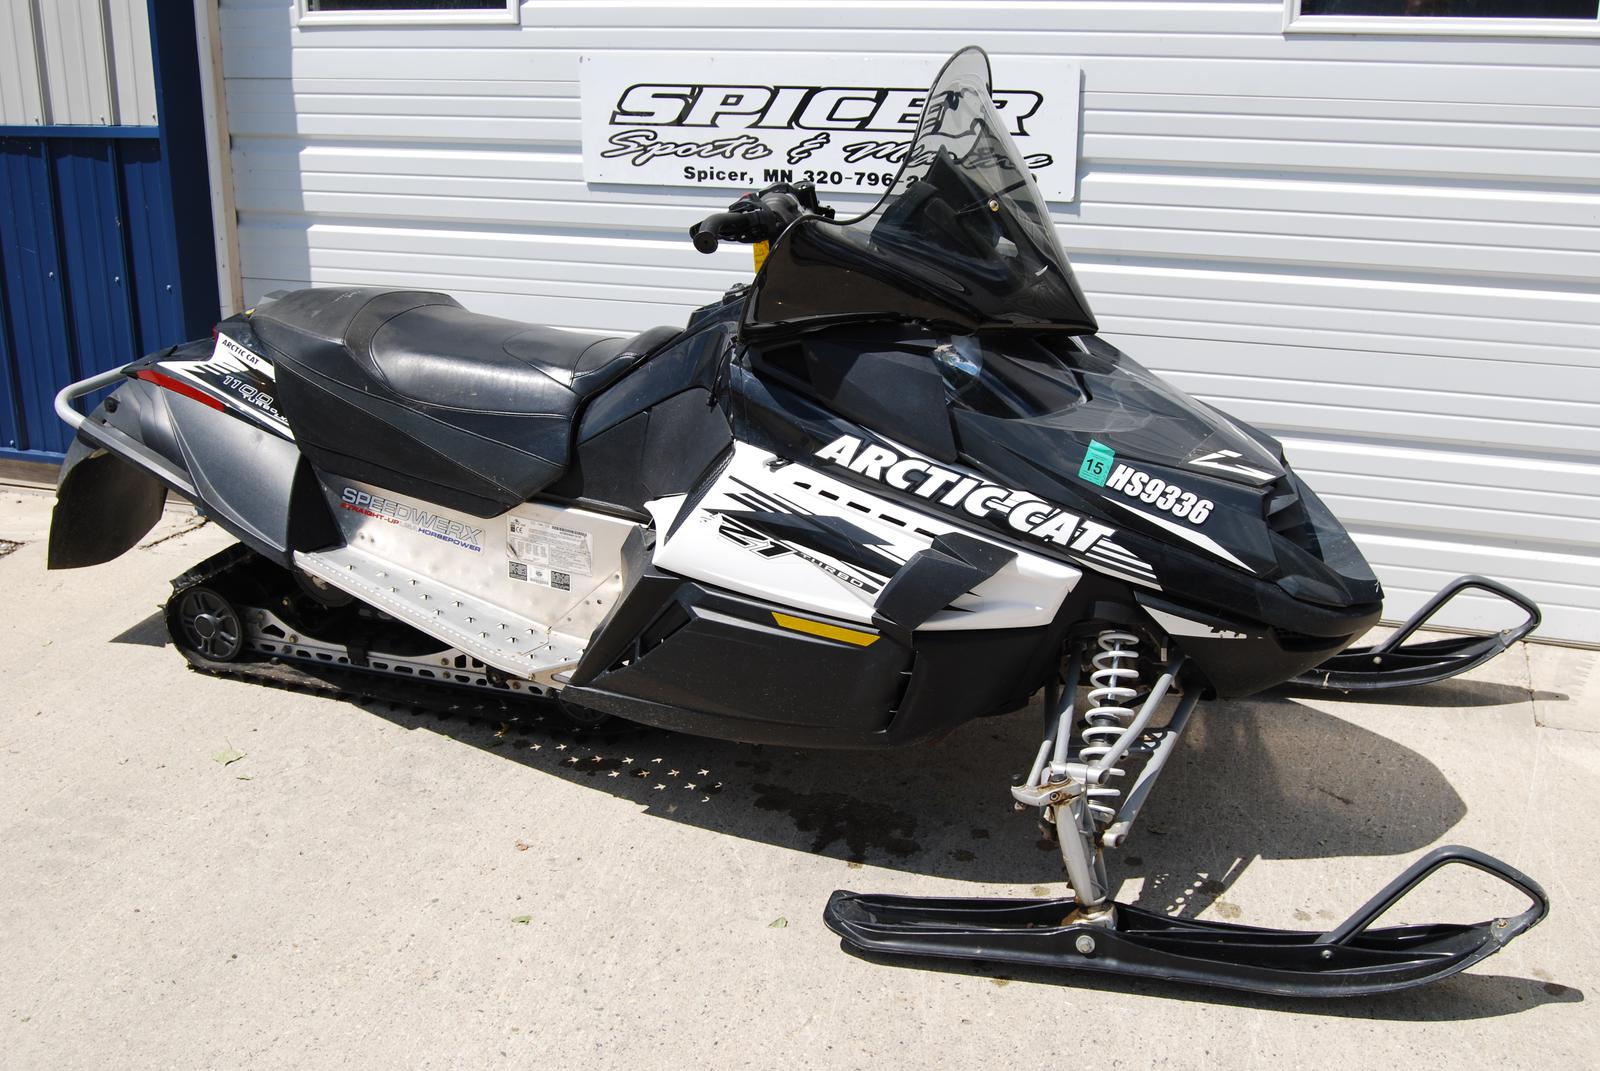 Snowmobile from Arctic Cat Spicer Sports & Marine Inc